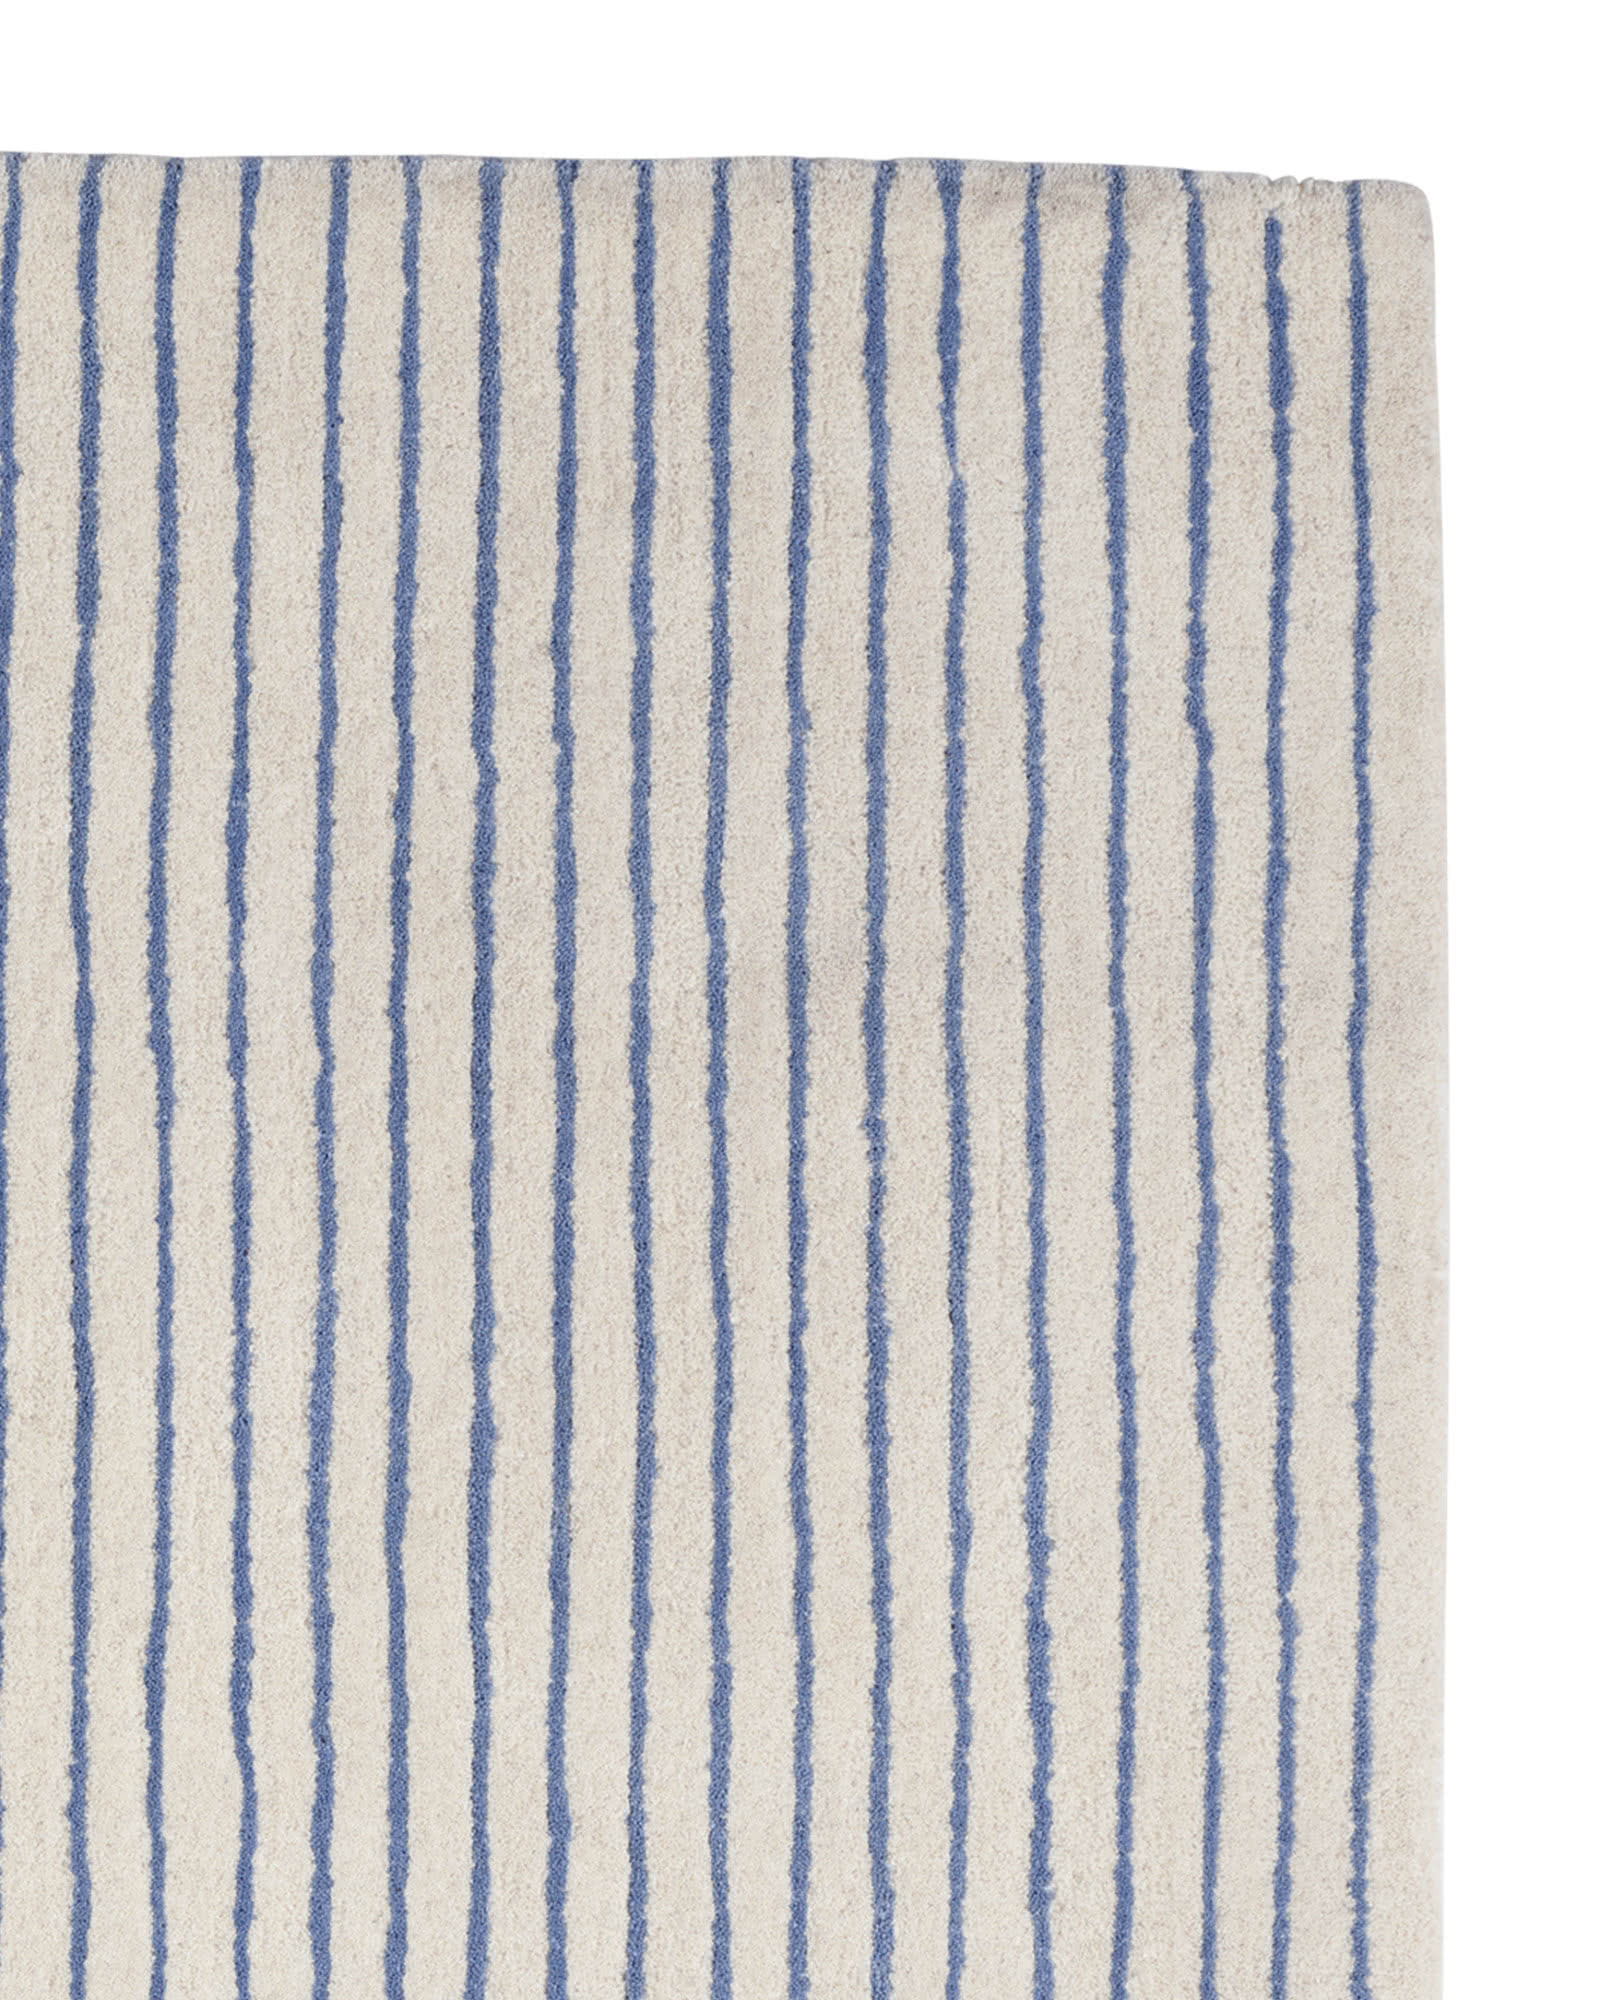 Pencil Stripe Rug